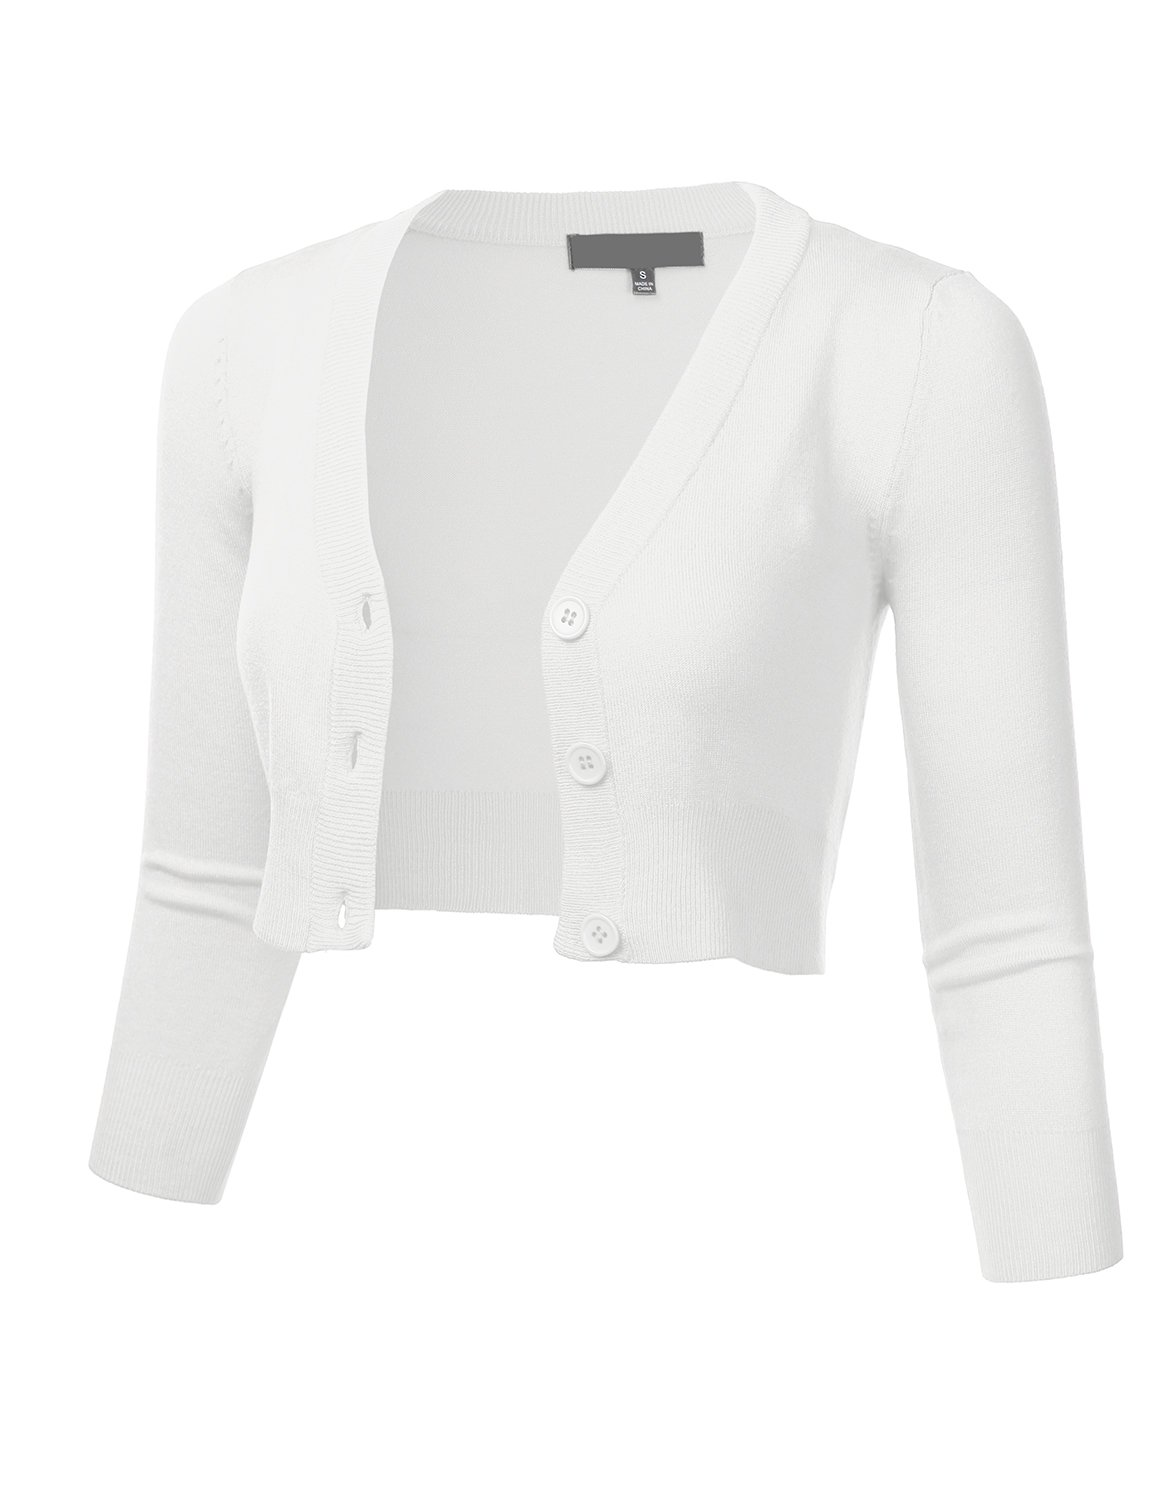 FLORIA Women Solid Button Down 3/4 Sleeve Cropped Bolero Cardigan Sweater White M